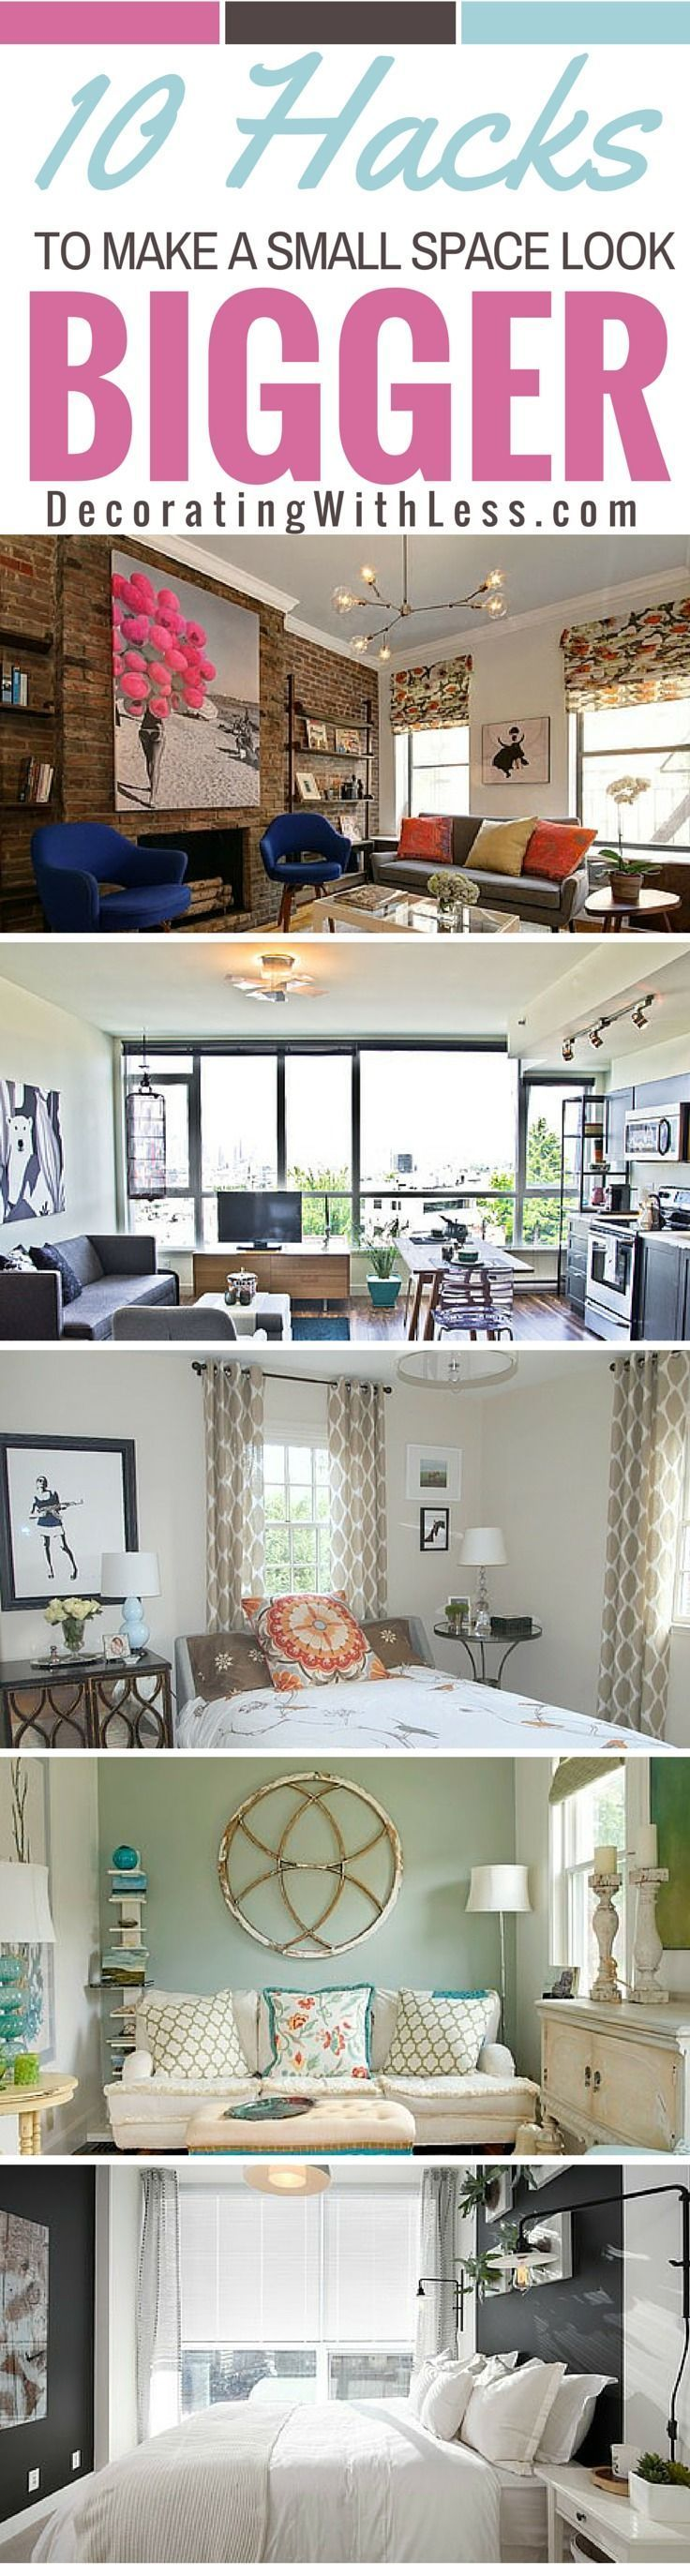 10 Hacks to Make a Small Space Look Bigger - There are simple ways you can make any room in your home appear bigger...the way you decorate your home or apartment does have a dramatic effect on how your space makes you feel. -Decorating With Less